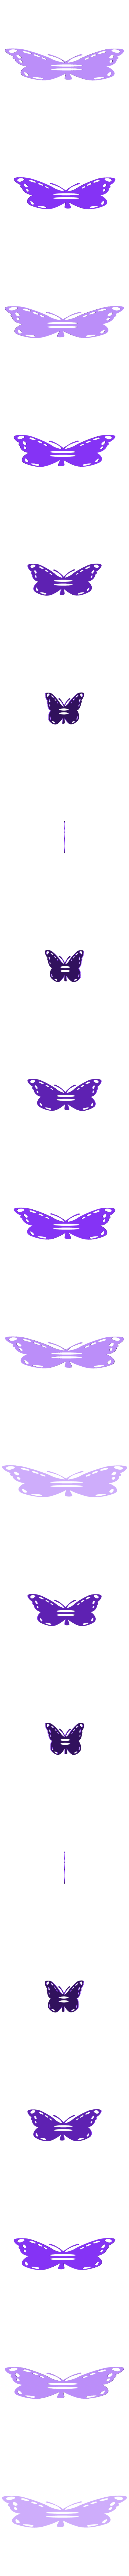 Flappy_Butterfly_3dprintny.stl Download free STL file Butterfly Fun • 3D print template, barb_3dprintny